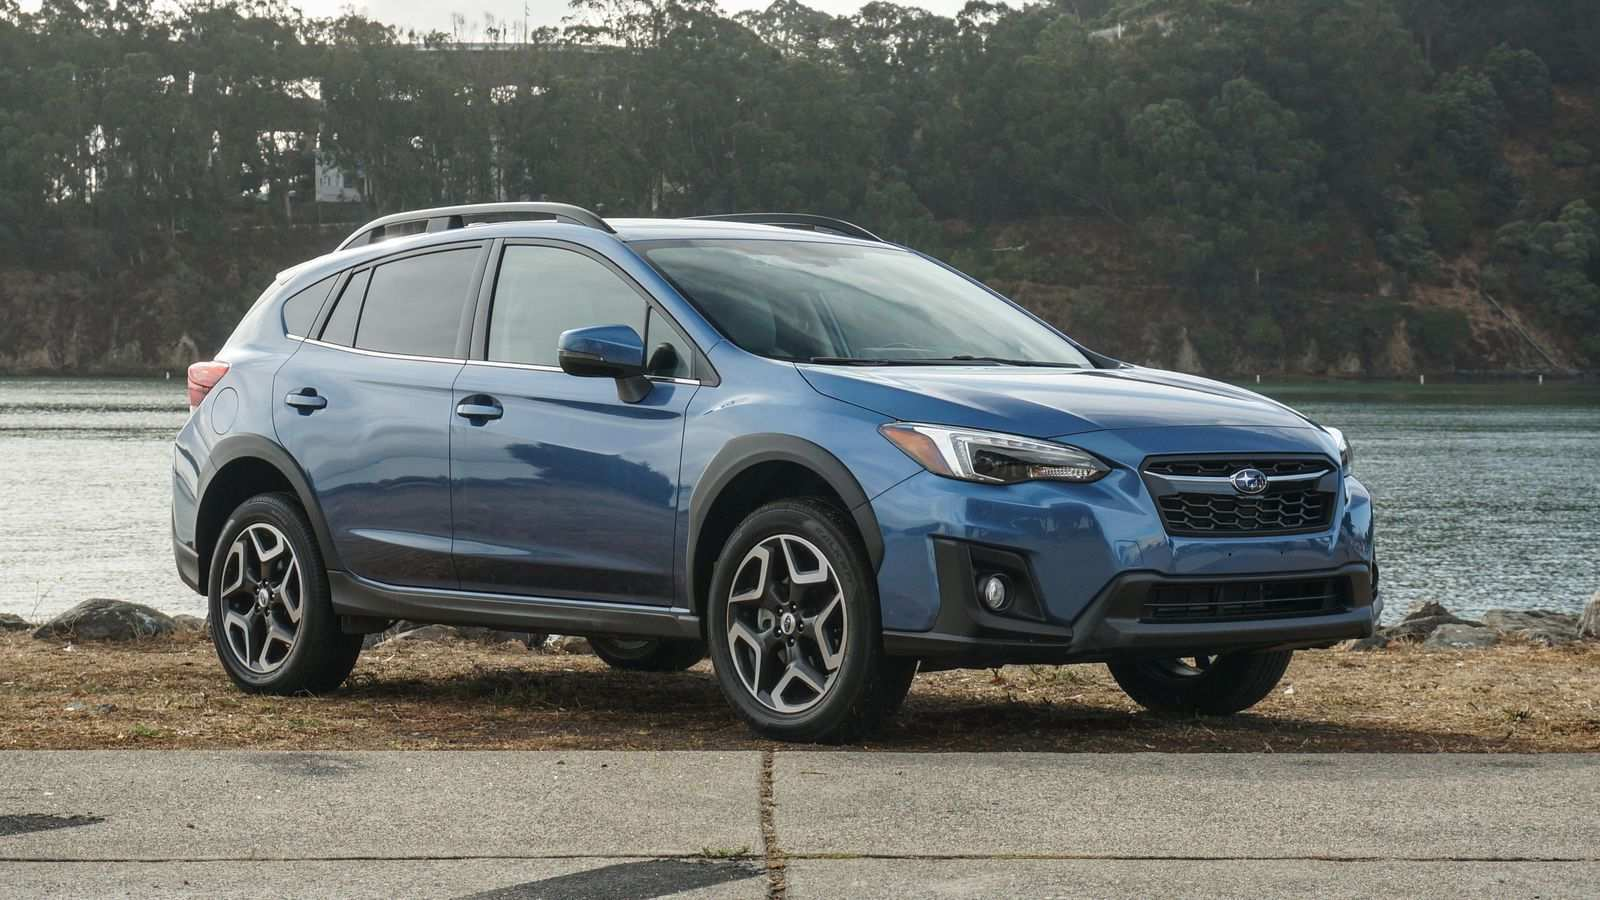 60 All New 2019 Subaru Crosstrek Kbb Reviews with 2019 Subaru Crosstrek Kbb